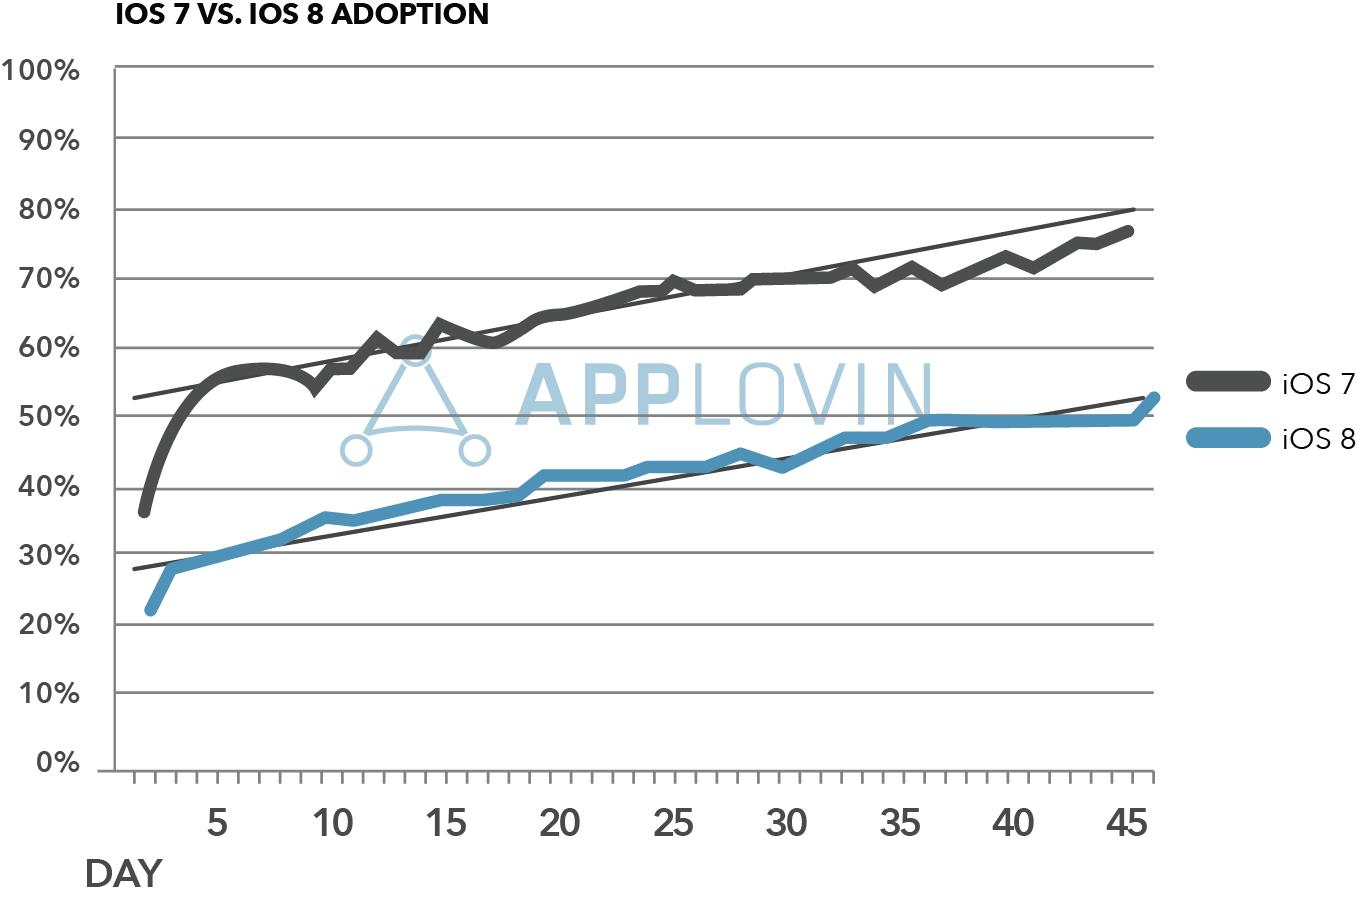 Applovin iOS7 vs iOS8 Global Adoption